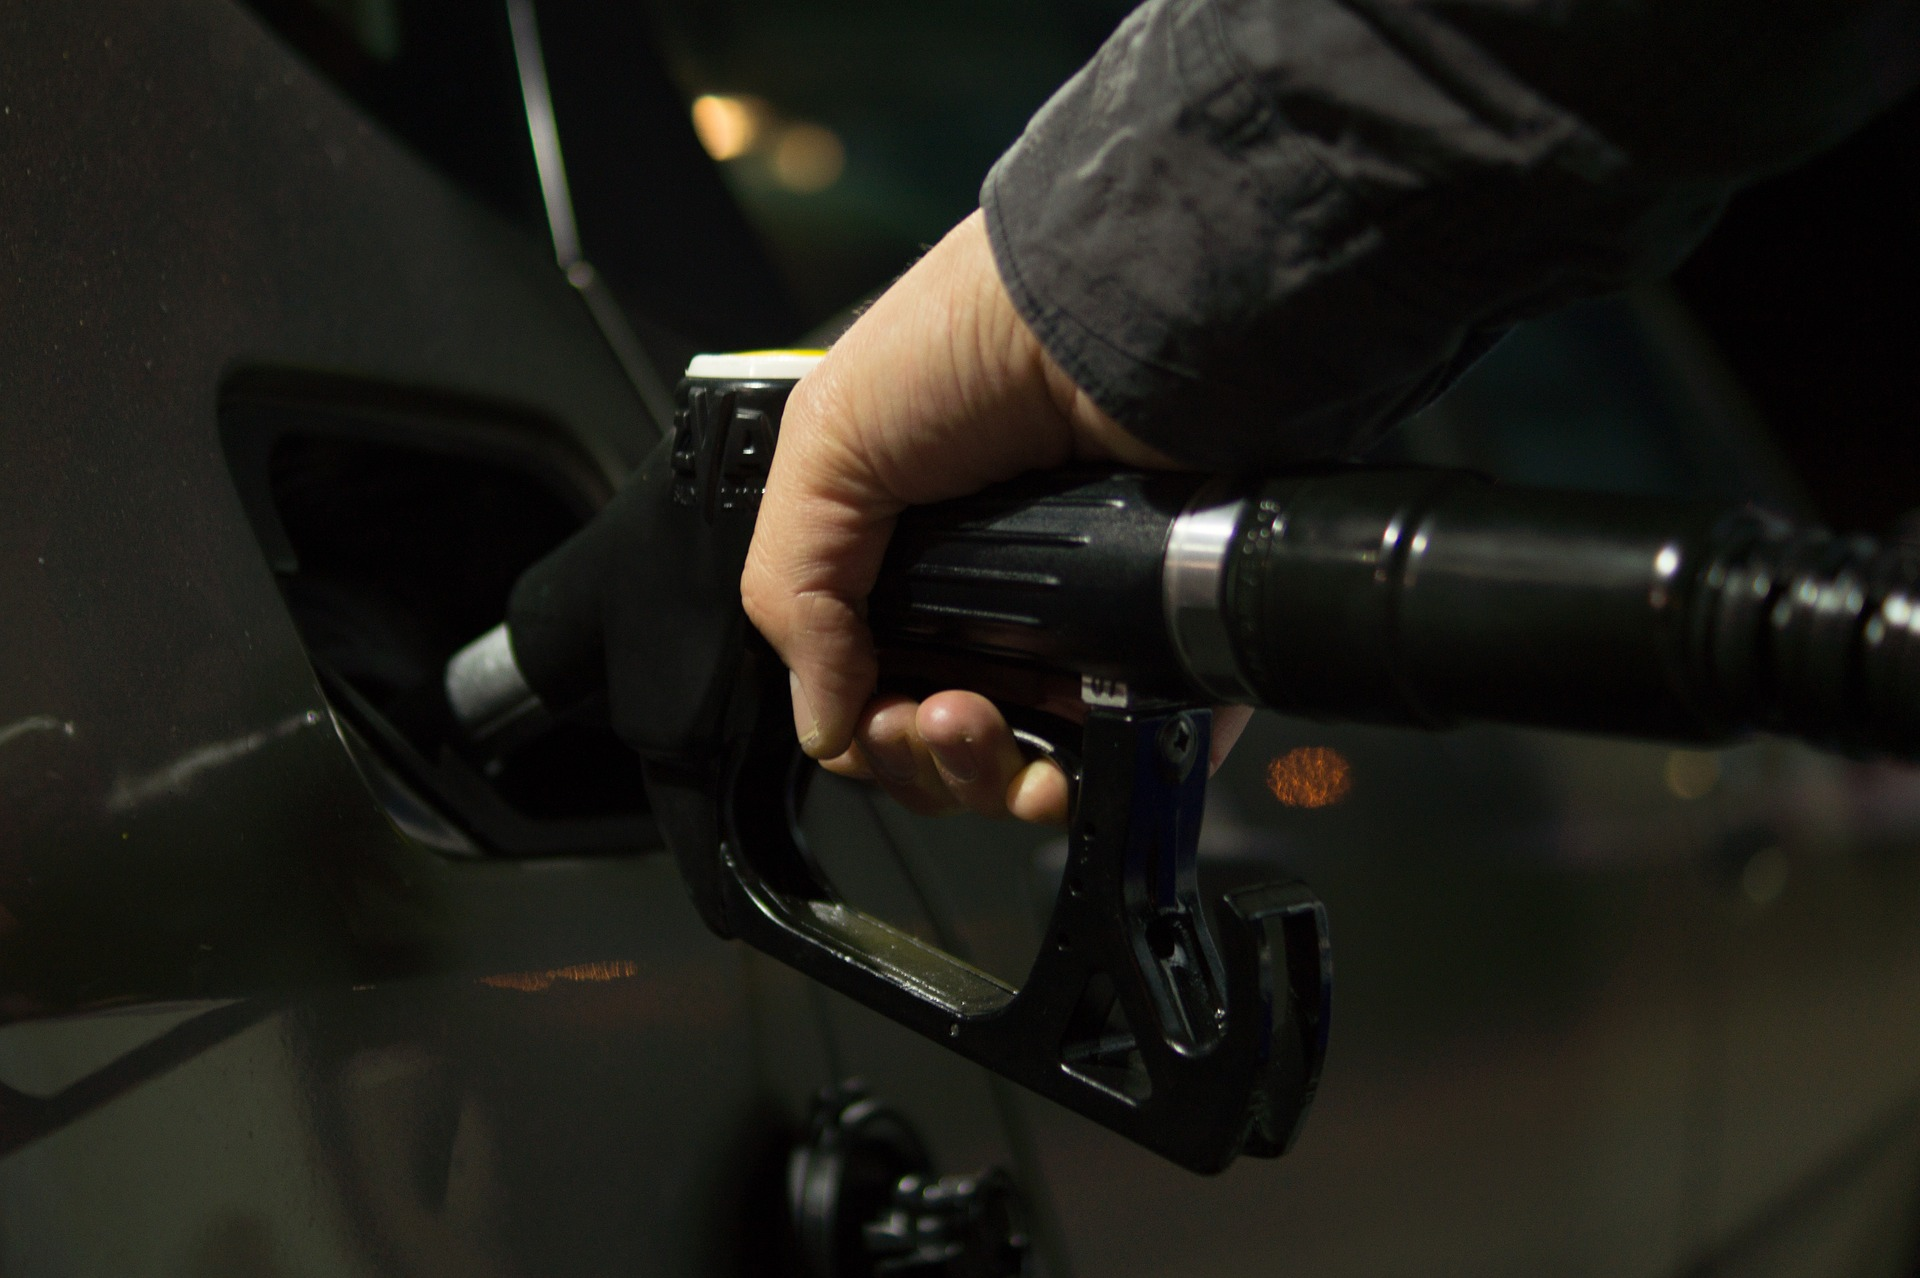 A person is fueling the car with gas